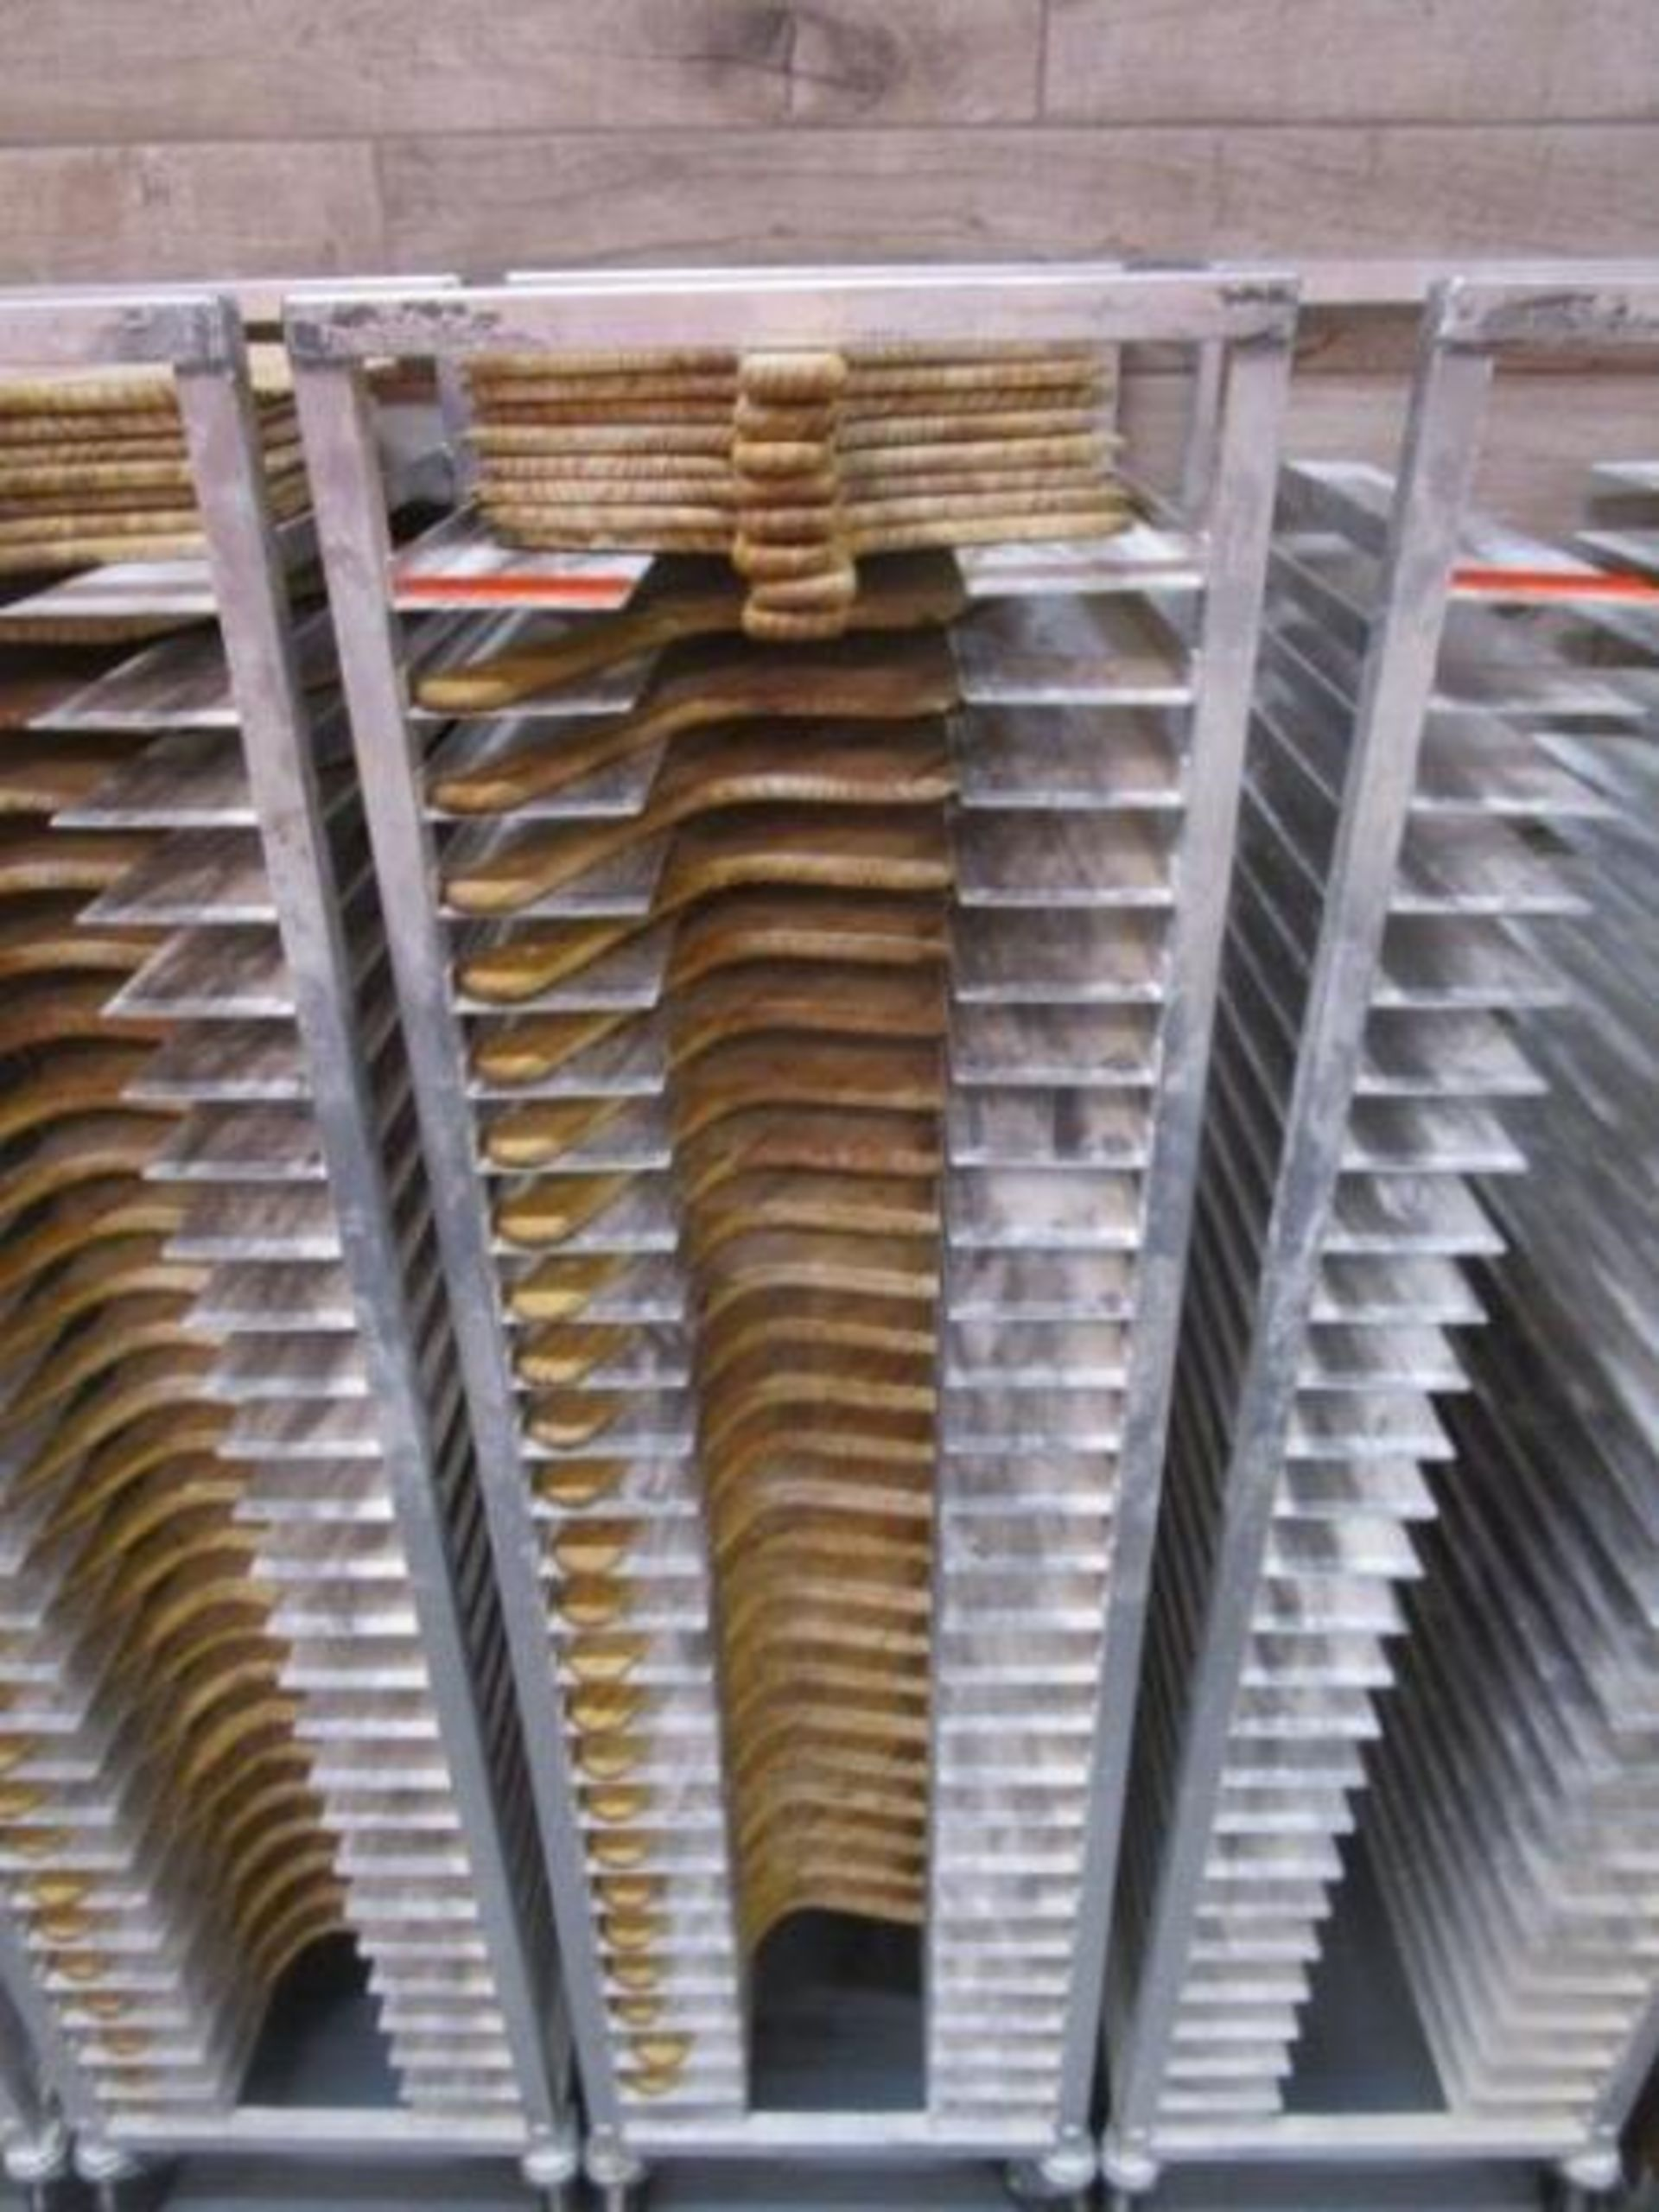 Lot 27 - Sheet Pan Rack by Channel w/ Wood Pizza Peels